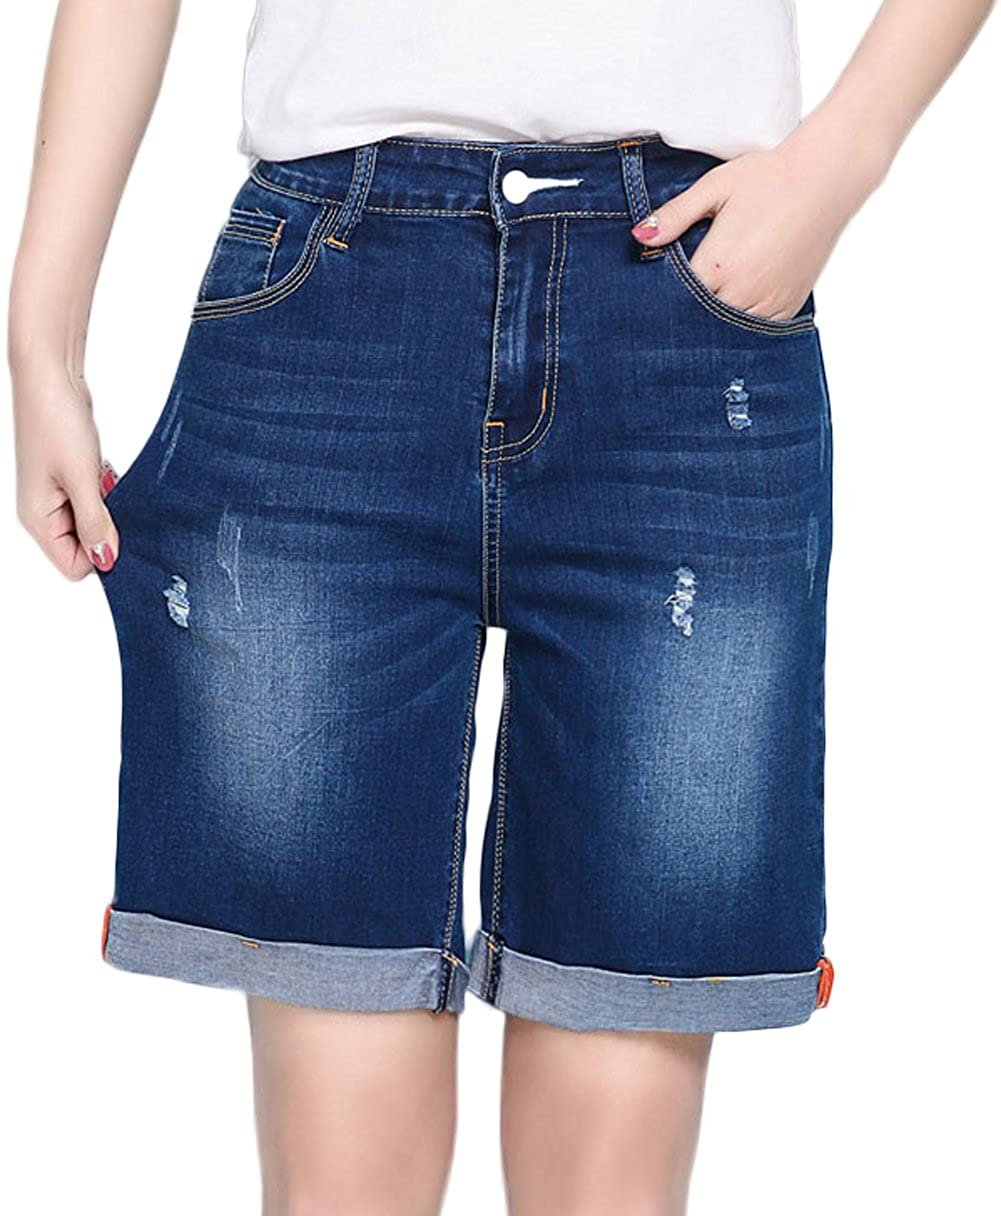 41d4e85e08 Cute and Comfortable - Soft, stretchy, and stylish capris for women that  look like denim but feel like pajamas so you can conquer the day  comfortably and ...